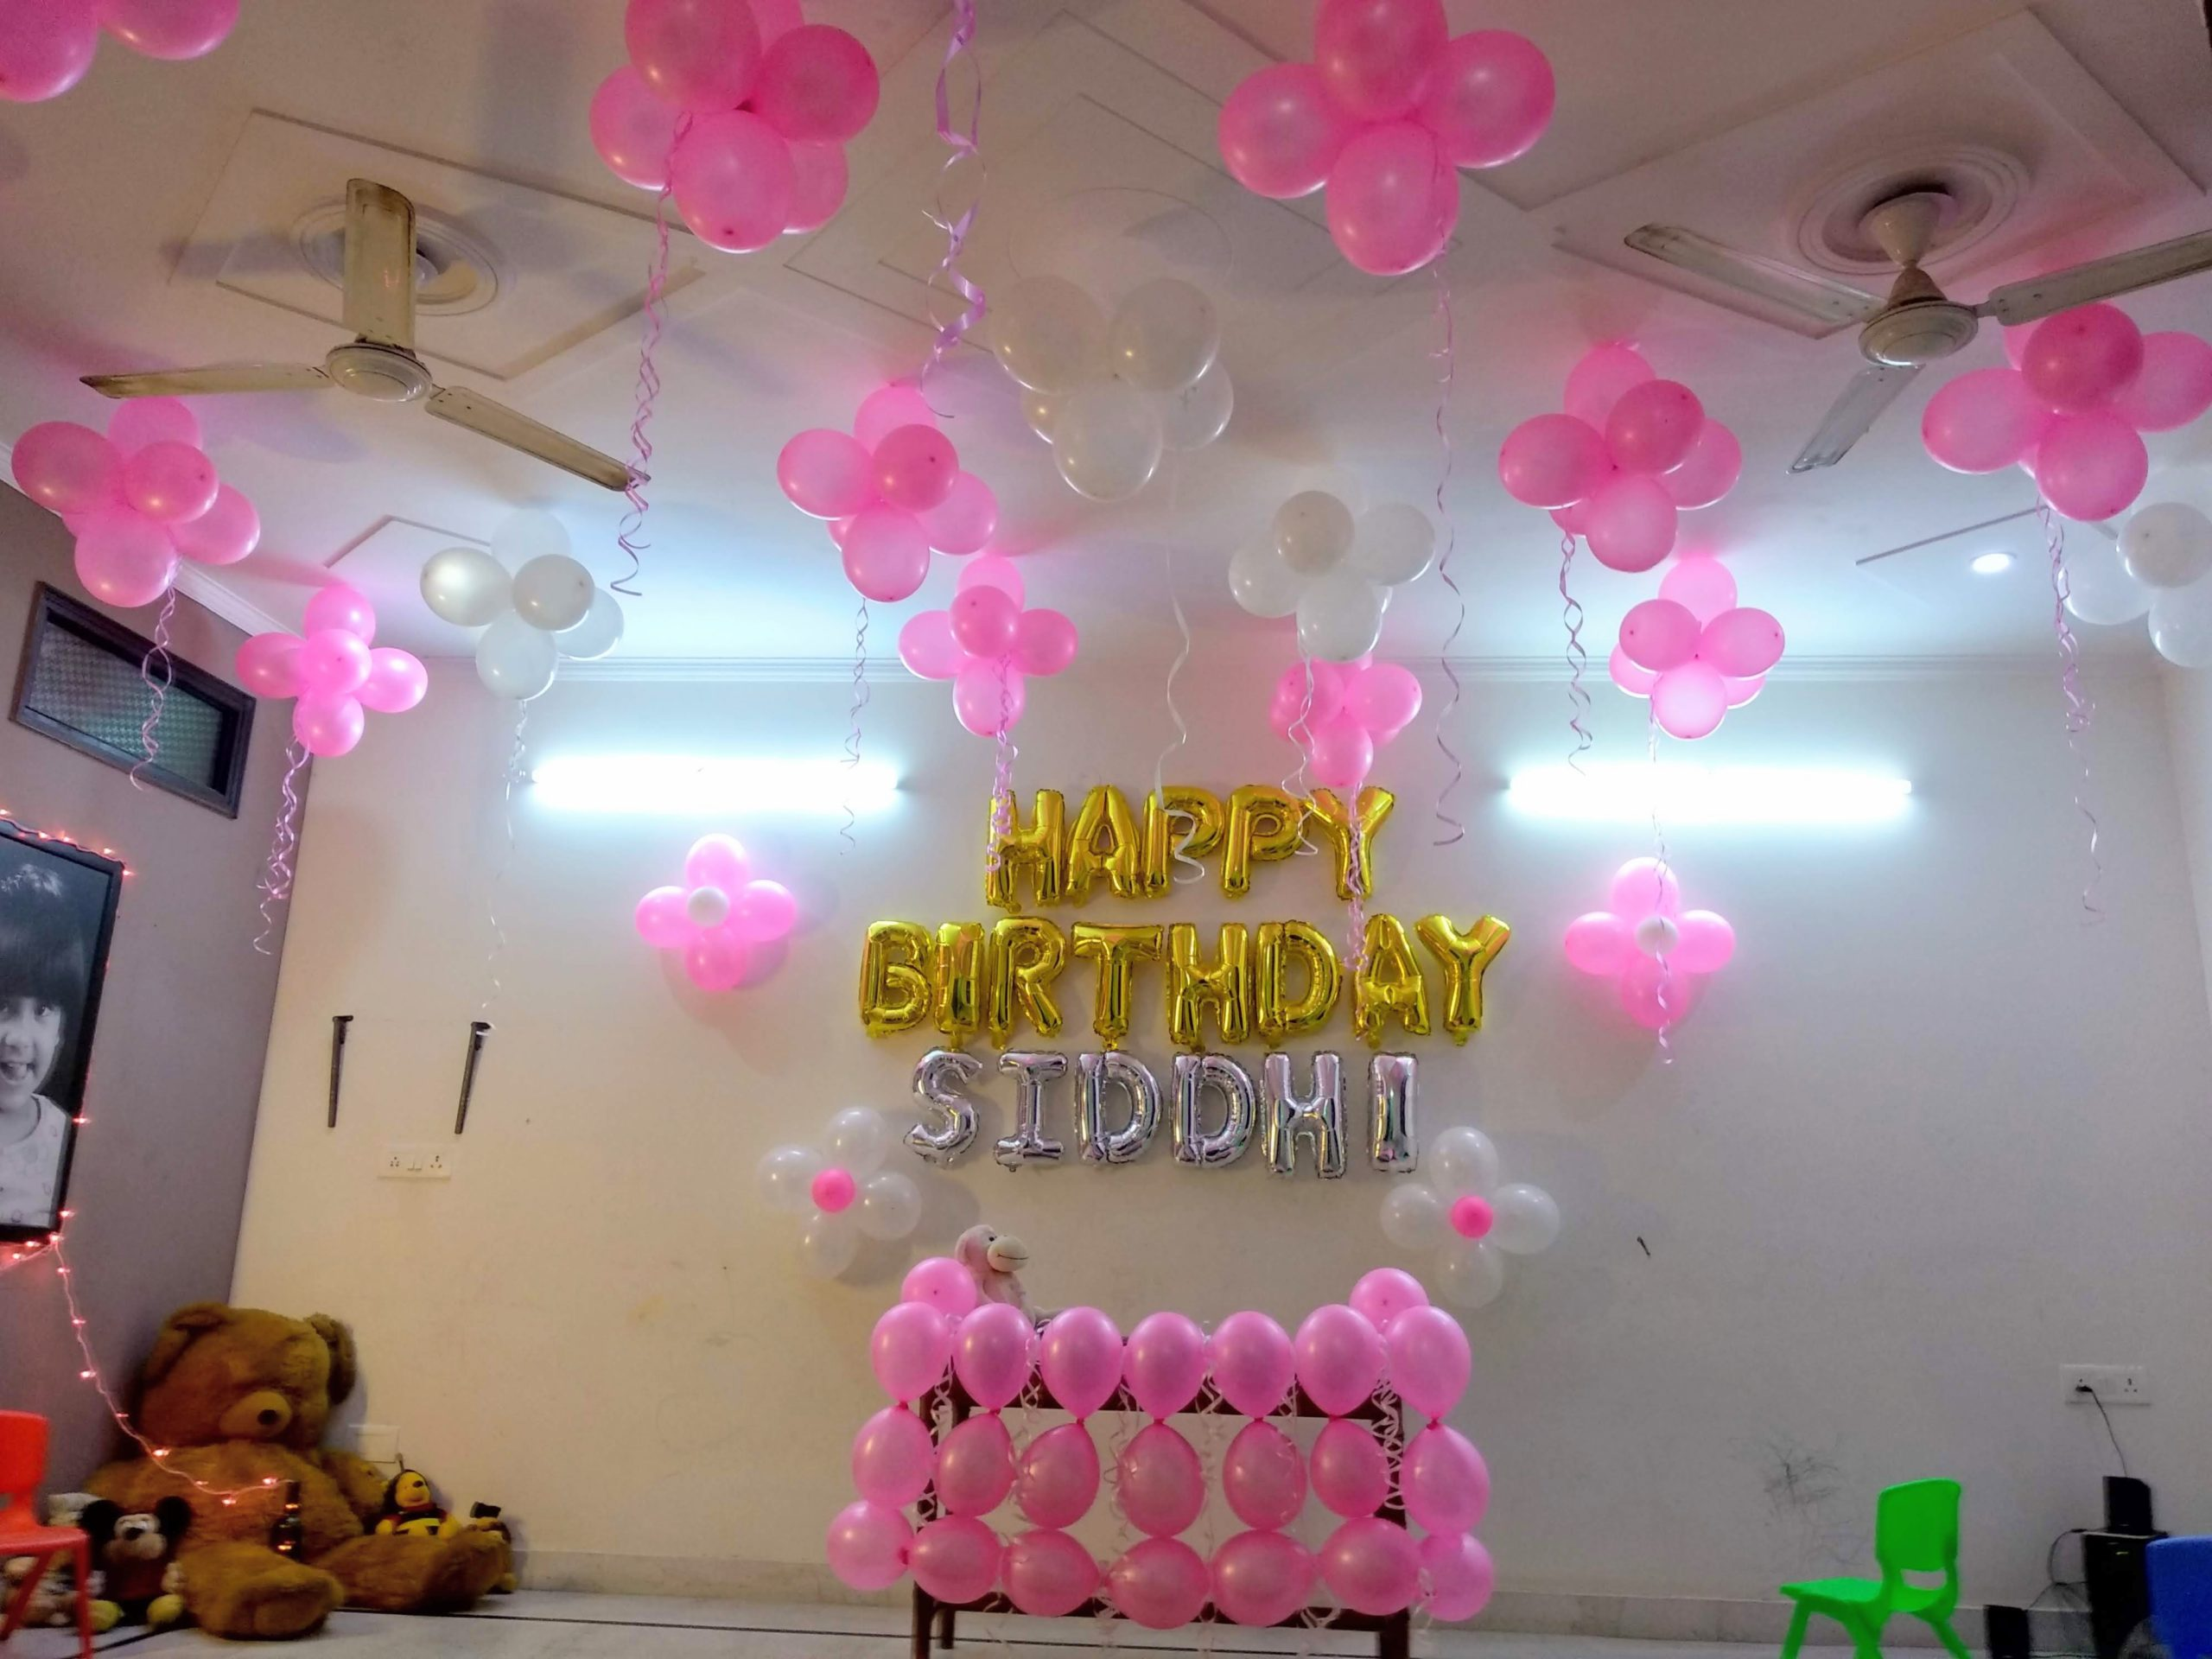 1 Hire The Best Decoration Services Provider In Delhi Ncr,Apartment Floor Plans New York City